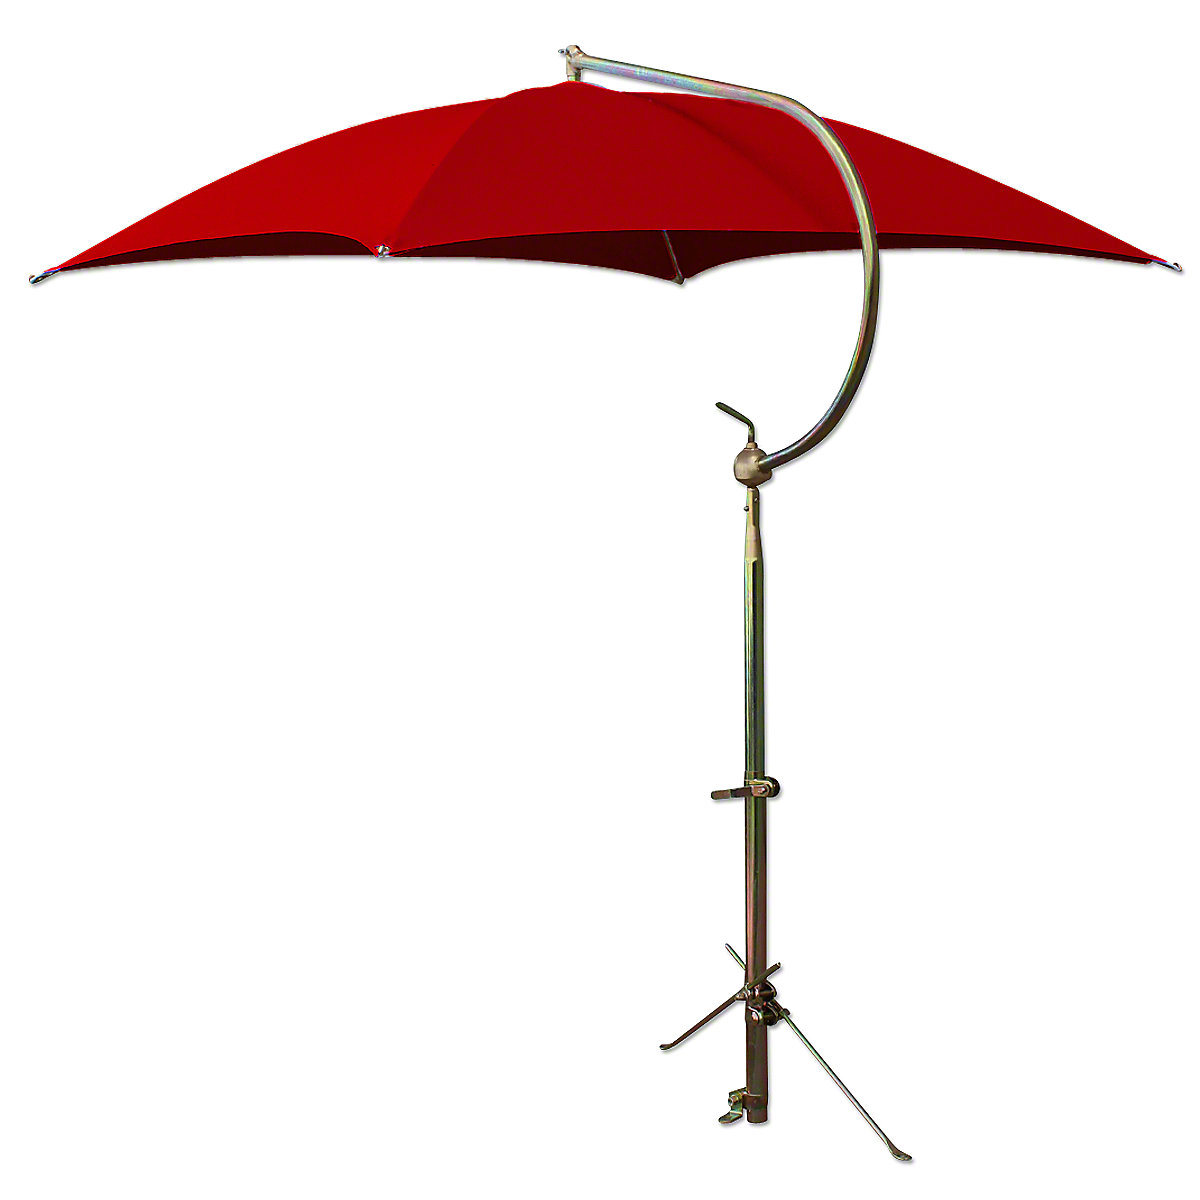 Deluxe Red Tractor Umbrella With Brackets. Four oil-tempered spring steel bows are locked into place with individual spring clips, providing ease of operation and a rigid framework for the cover. Frame constructed of tubular steel. All metal parts, including frame and mounting brackets, zinc plated for rust resistance and lasting appearance. 54 square cover is made of durable polyester material. Each corner is double reinforced and has heavy steel grommets. Complete with universal mounting bracket. NOTE: Can be mounted on side of fender, rear end / axle housing, foot platform. Fits tractors, combines, swathers and Industrial equipment.